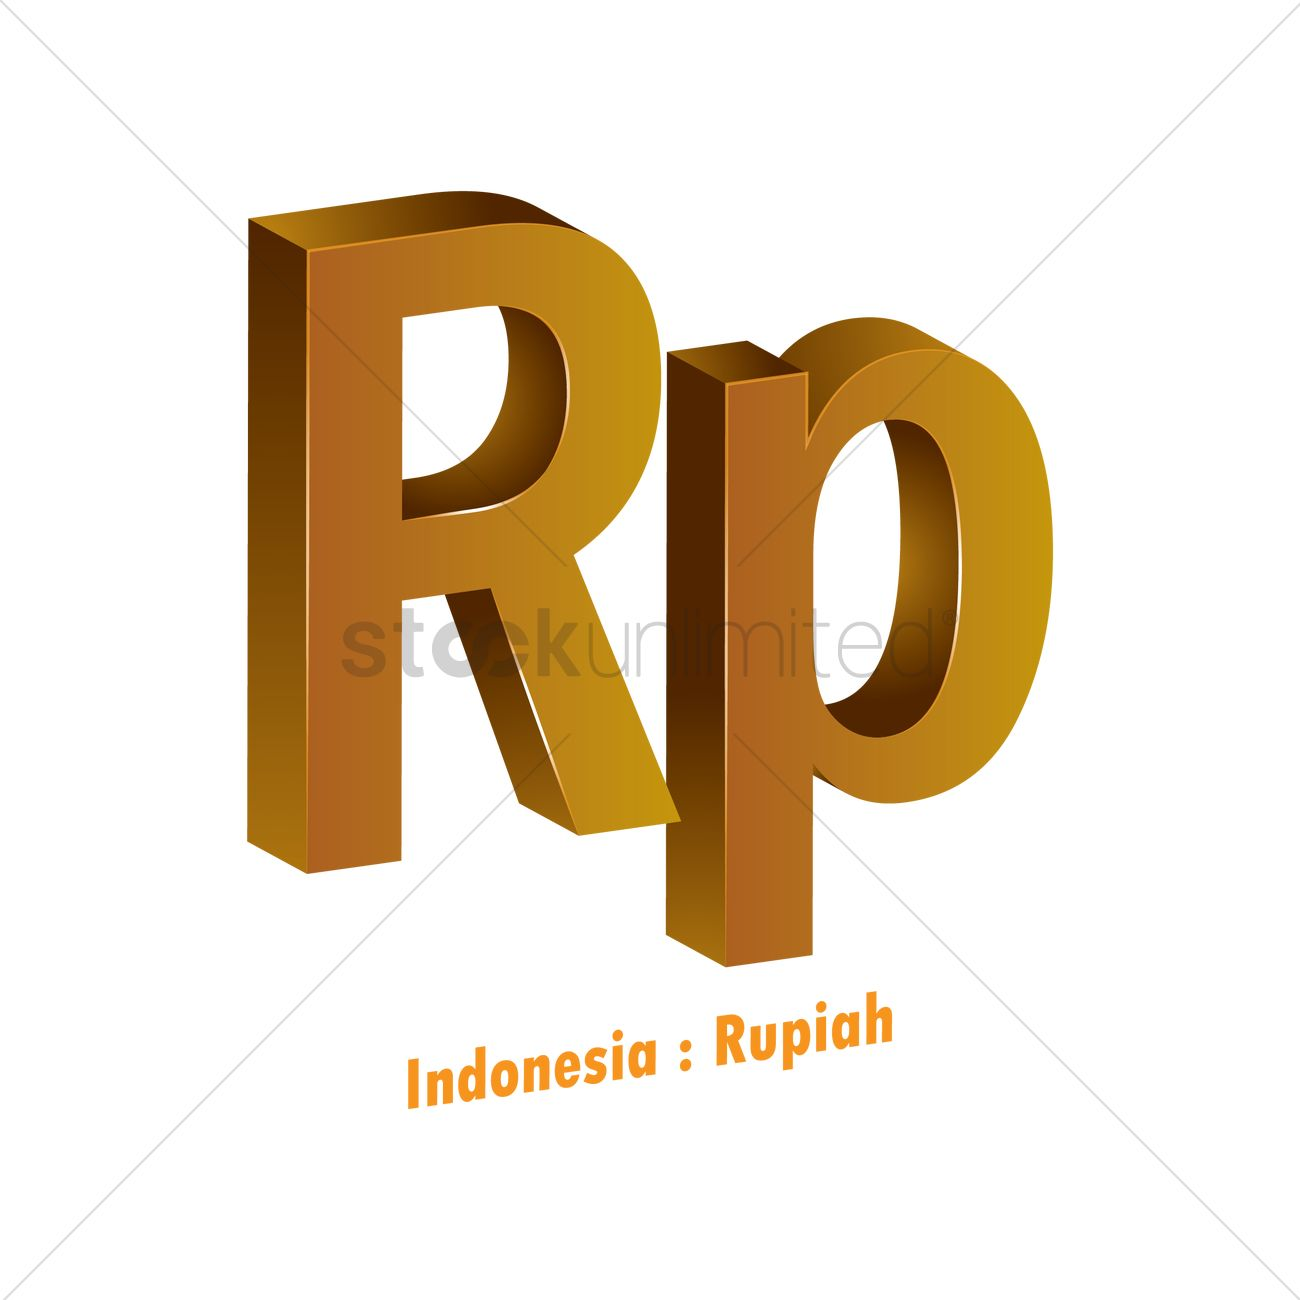 Icon icons symbol symbols sign signs money economy economies rupiah currency symbol biocorpaavc Image collections